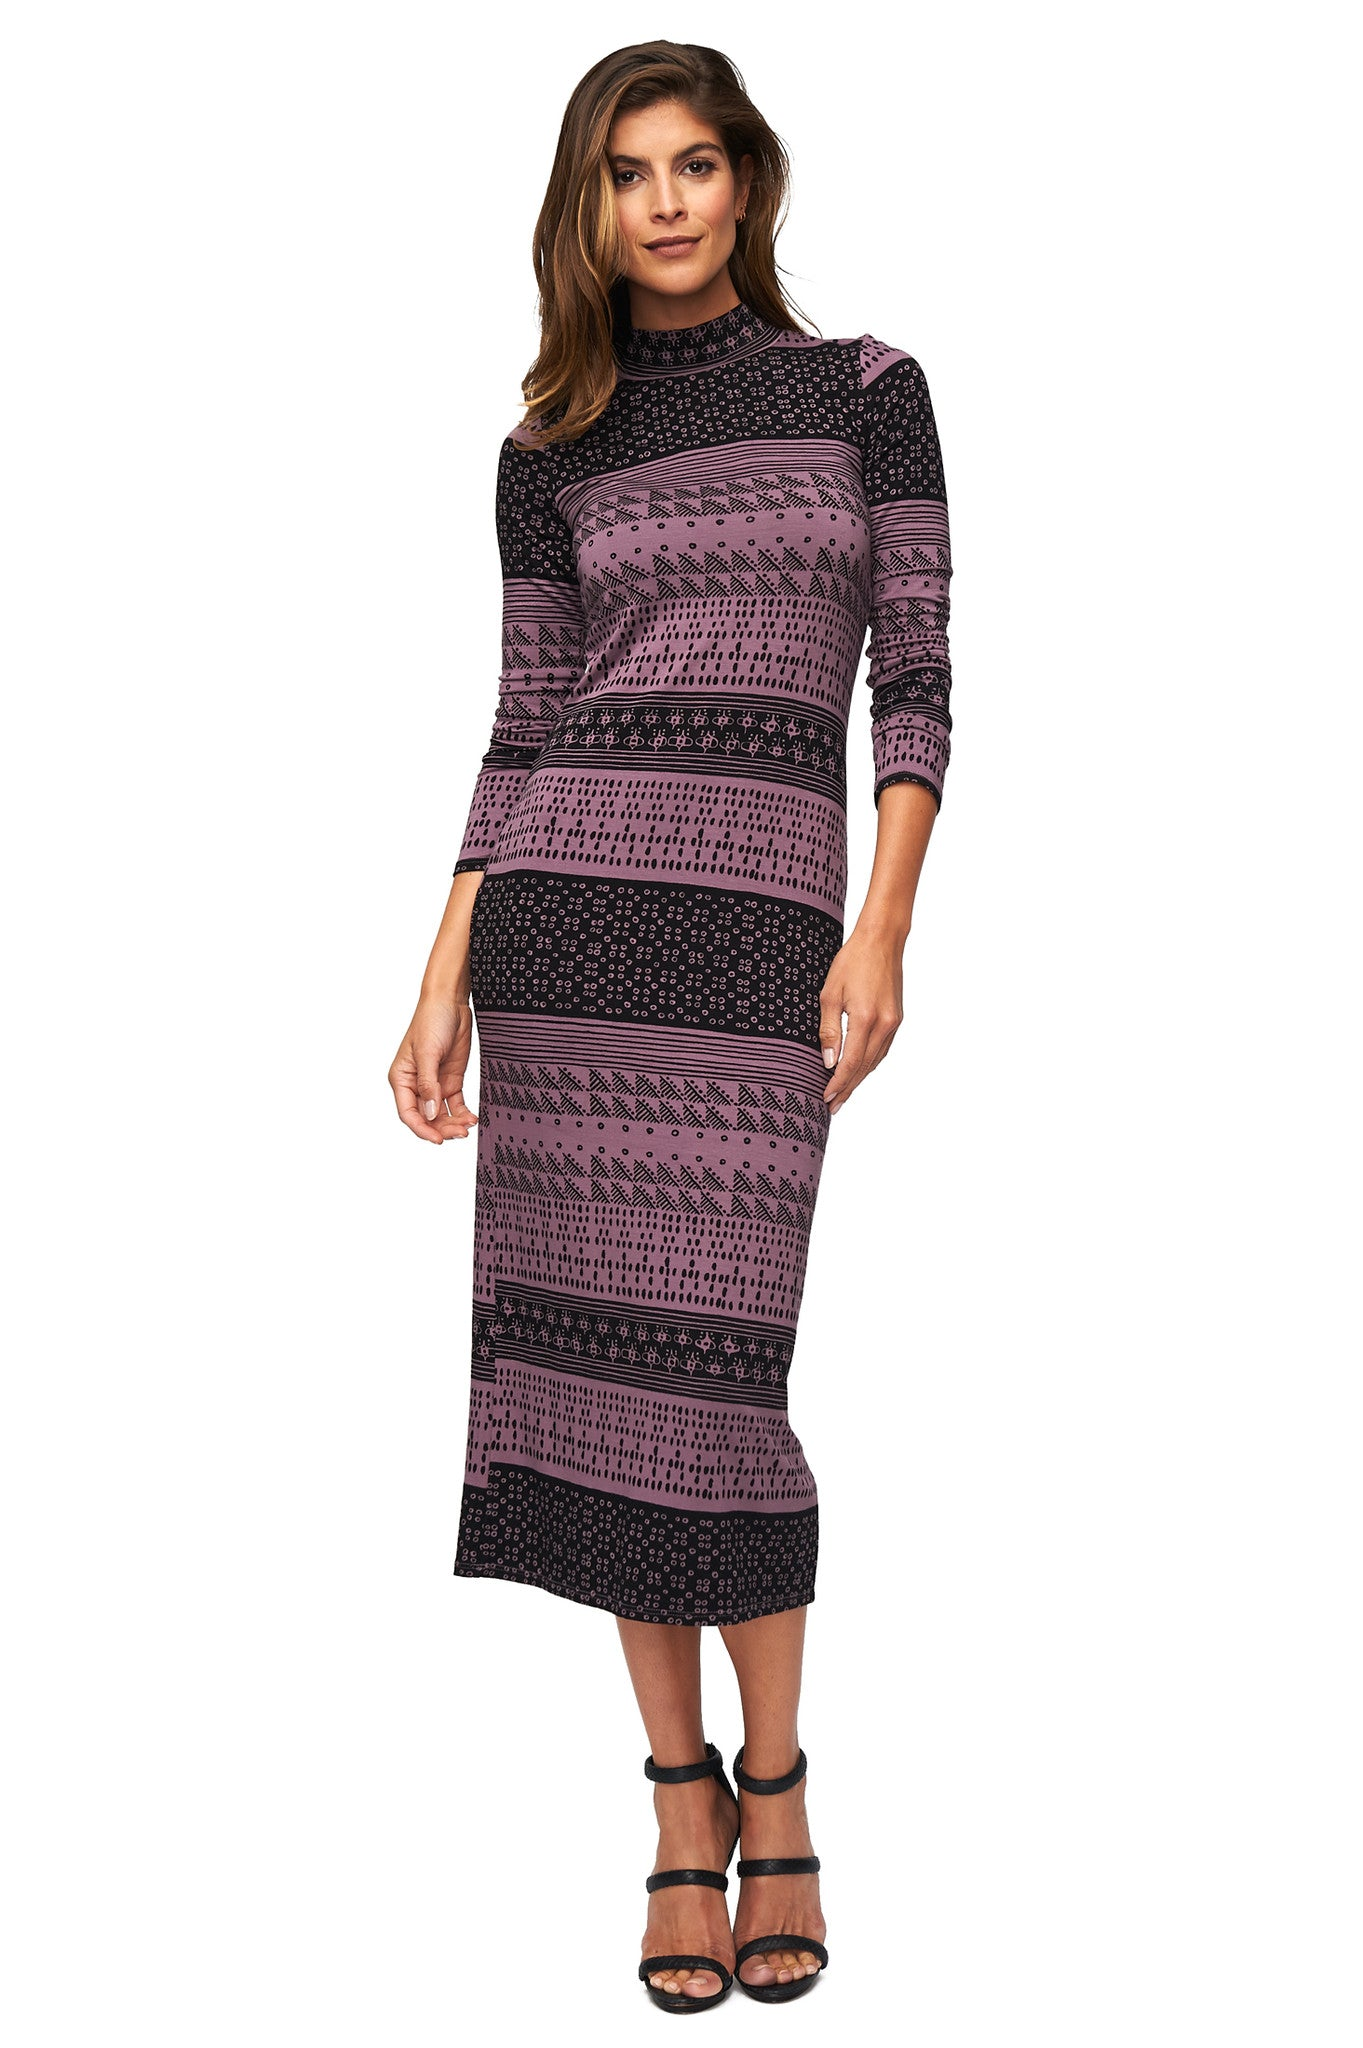 Mid-Length Stella Dress - Black Block Print